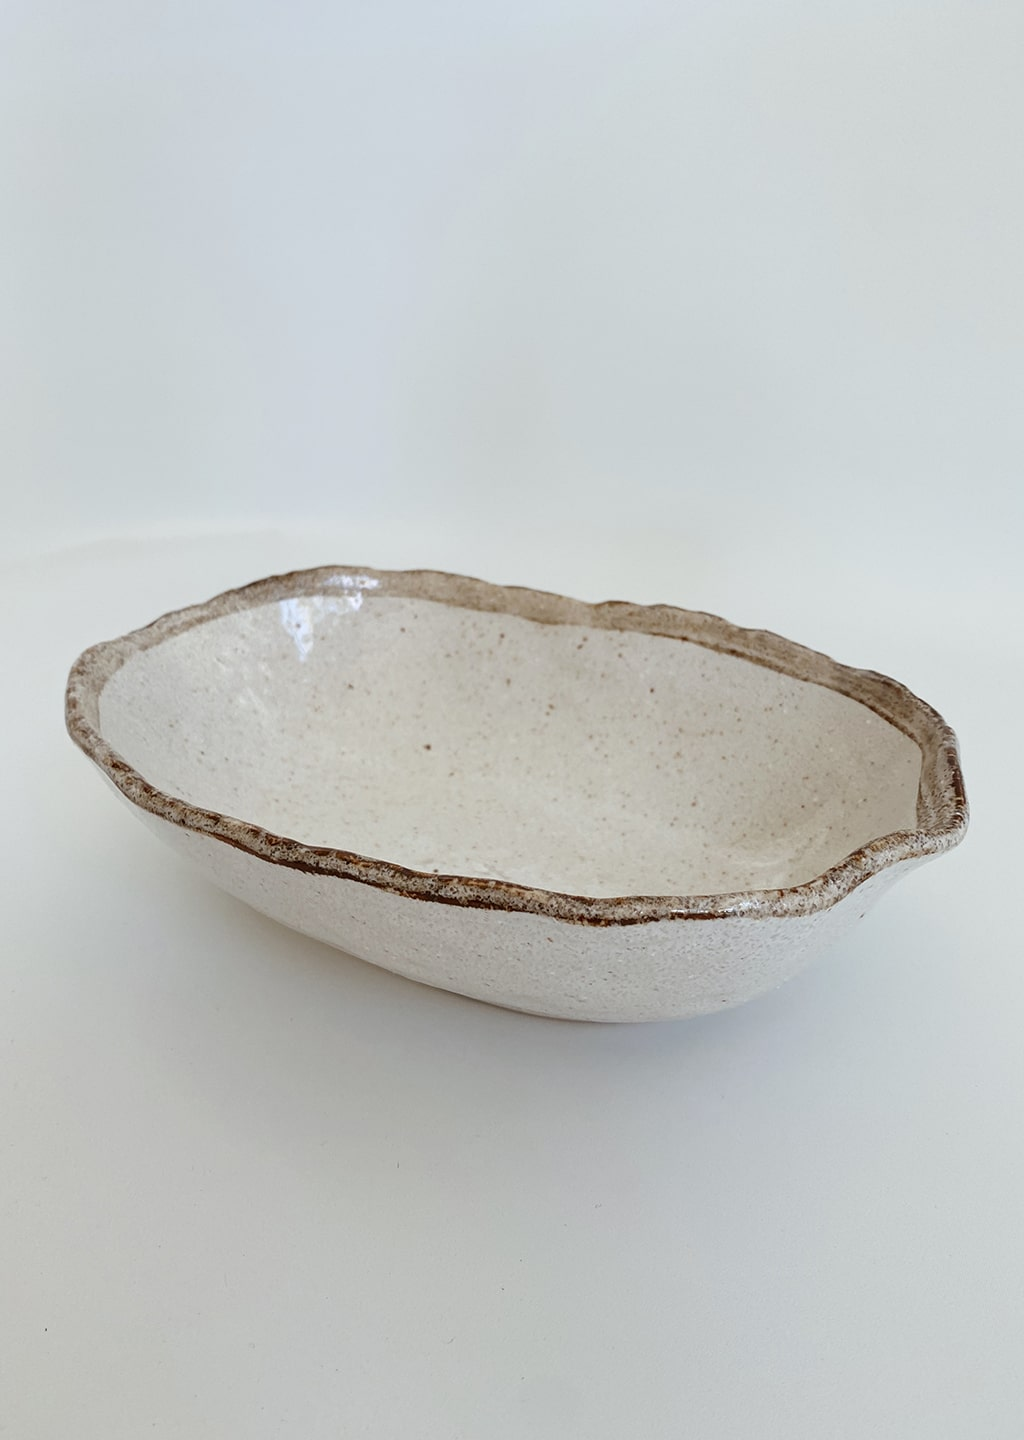 Shirokaratsu Oval Bowl